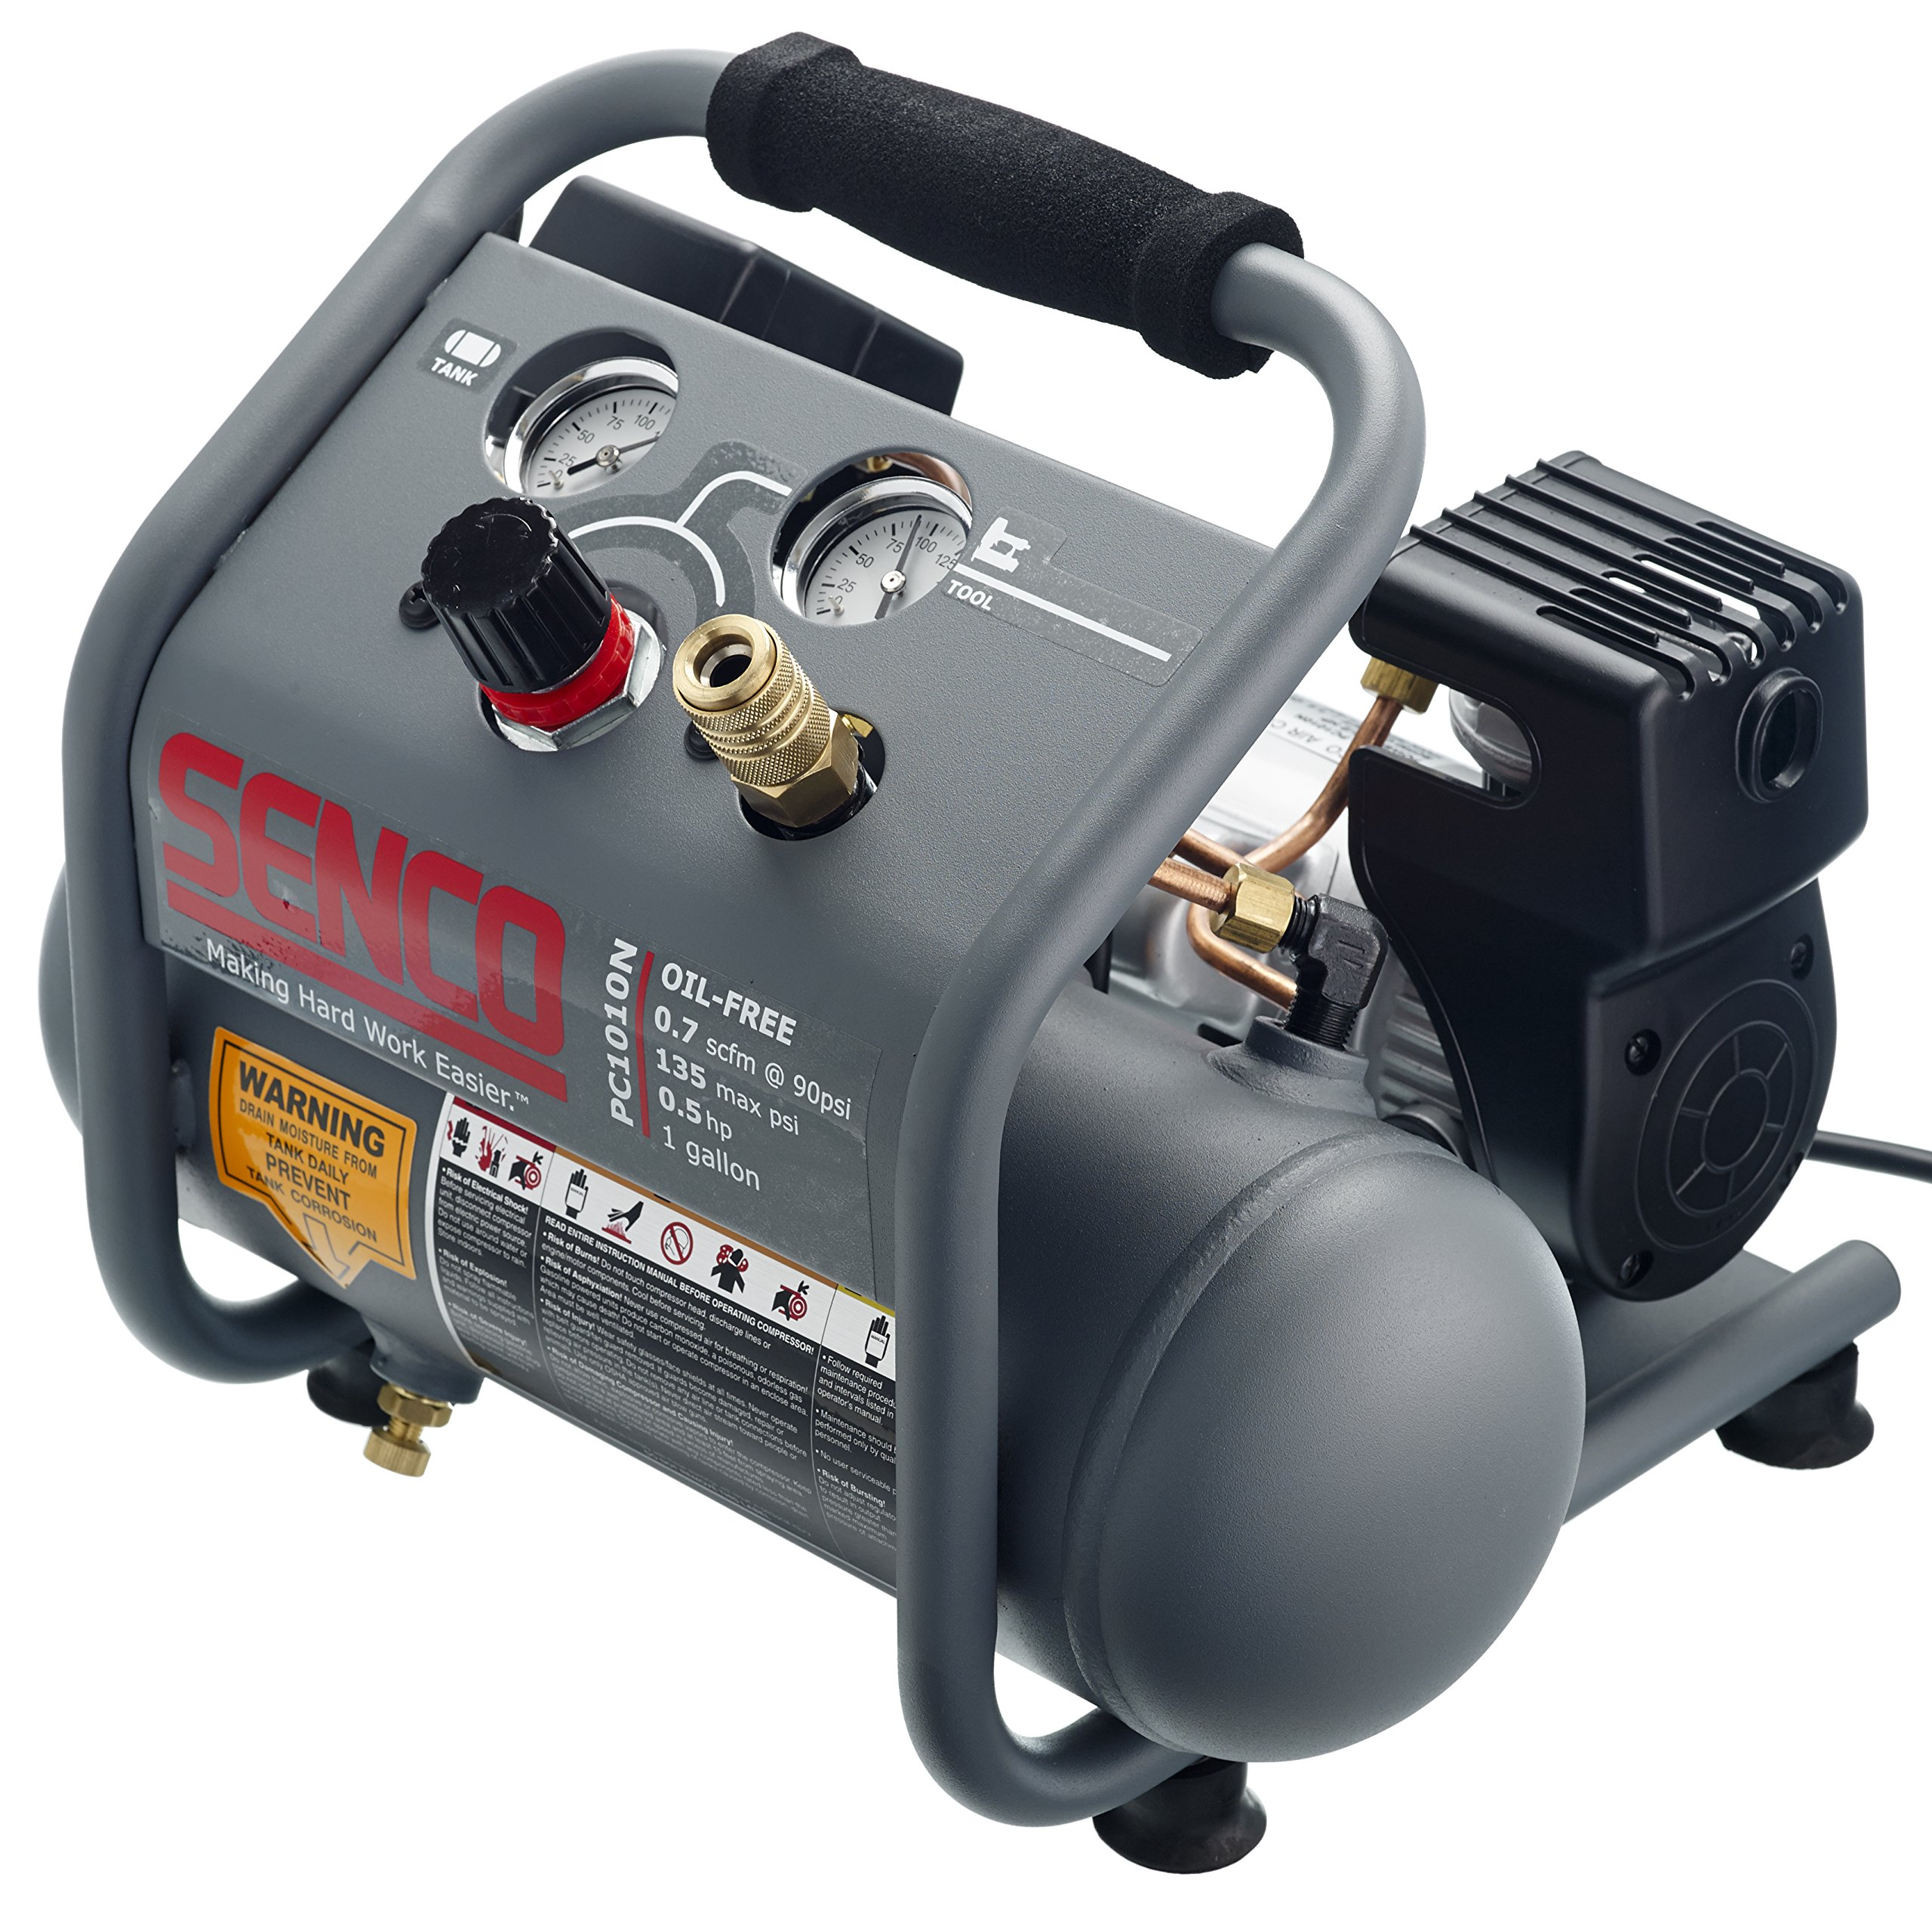 Senco PC1010N 1/2 hp Finish and Trim Portable Hot Dog Compressor, 1 gallon, Grey by Senco (Image #2)